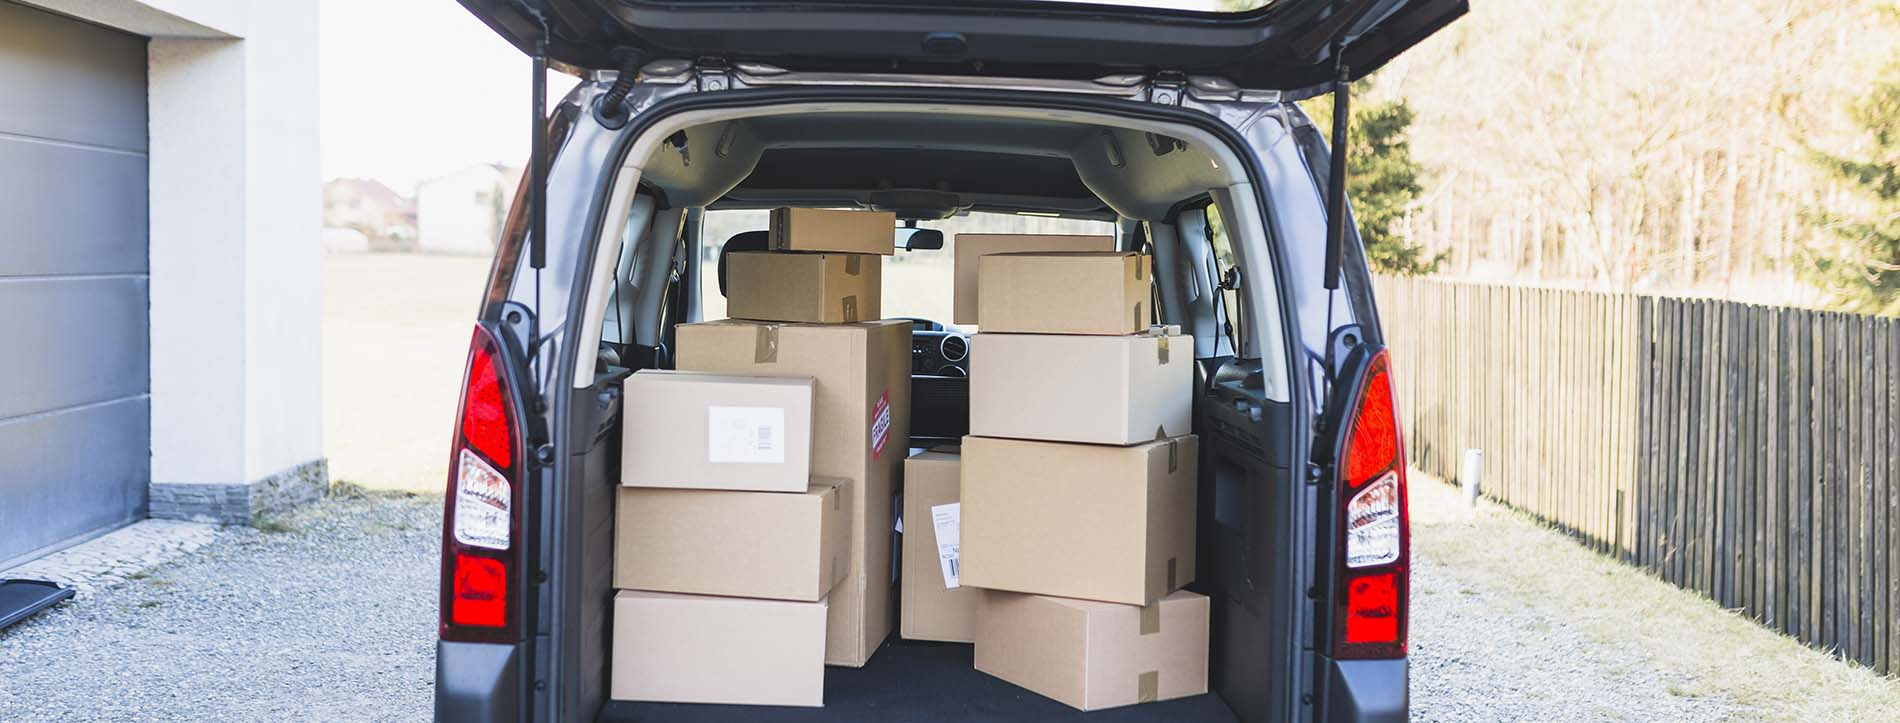 Free Moving Boxes in the Car